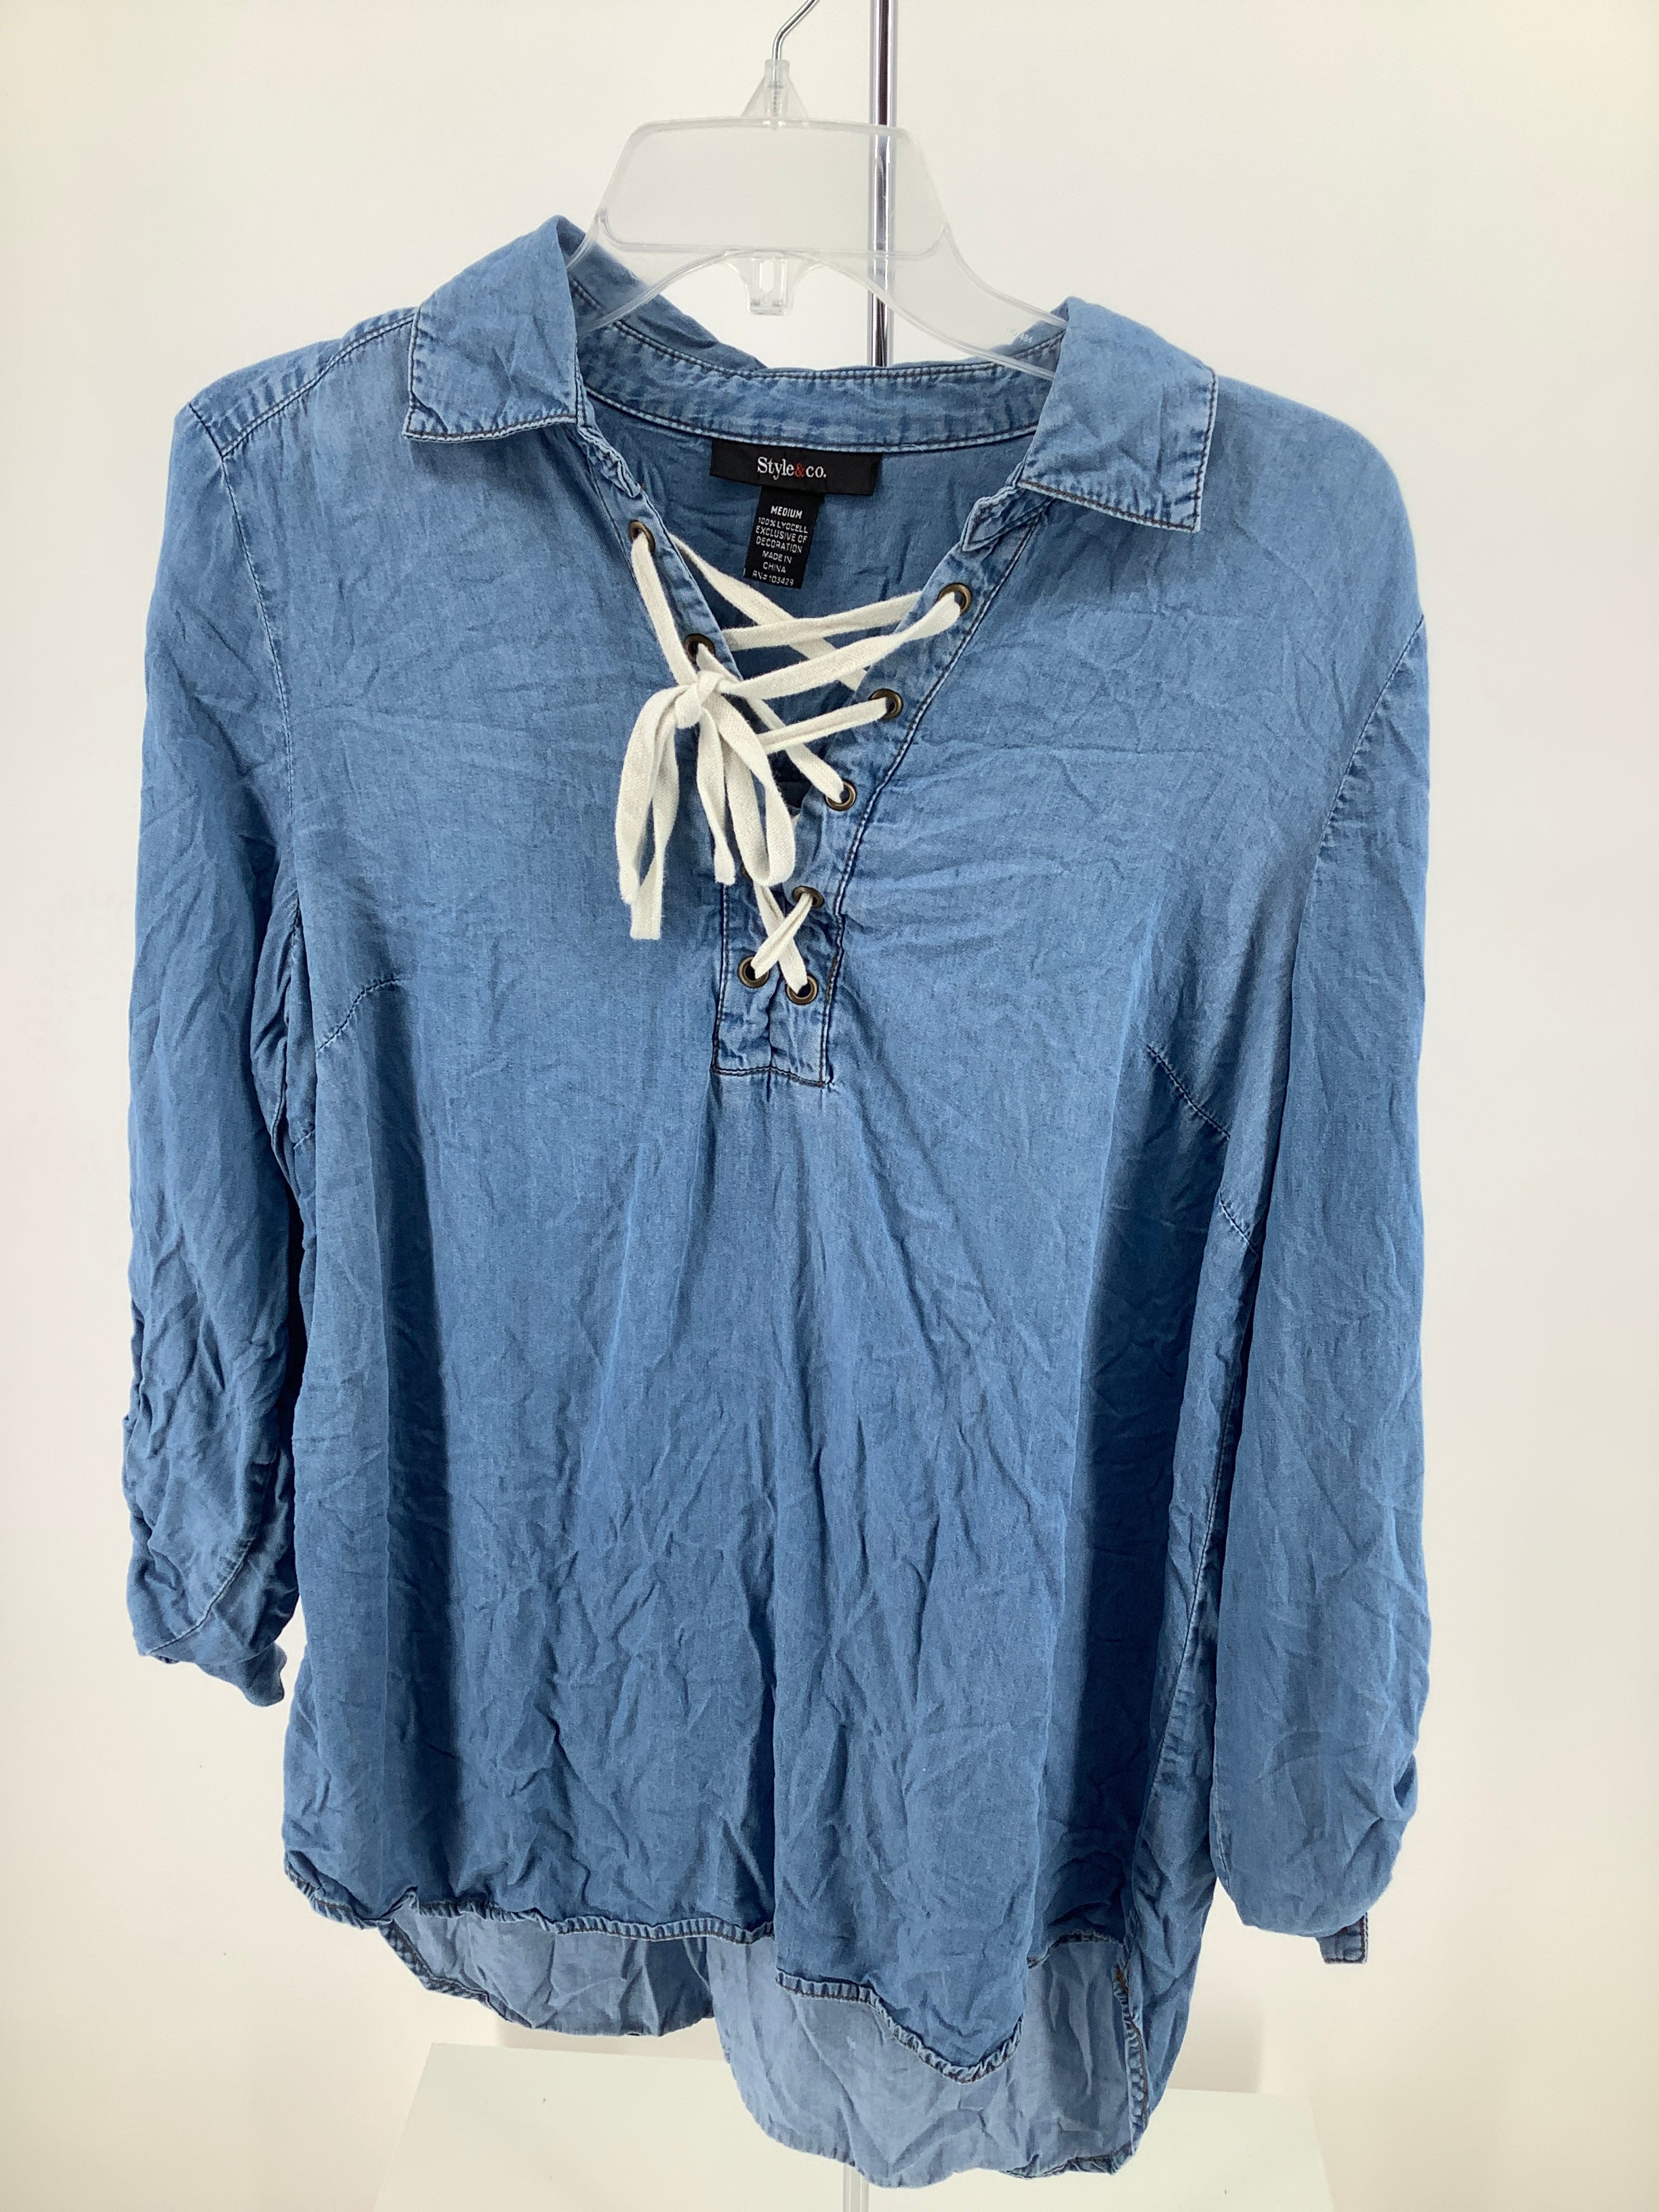 Primary Photo - brand: style and company , style: top long sleeve , color: denim , size: m , sku: 105-3221-14818